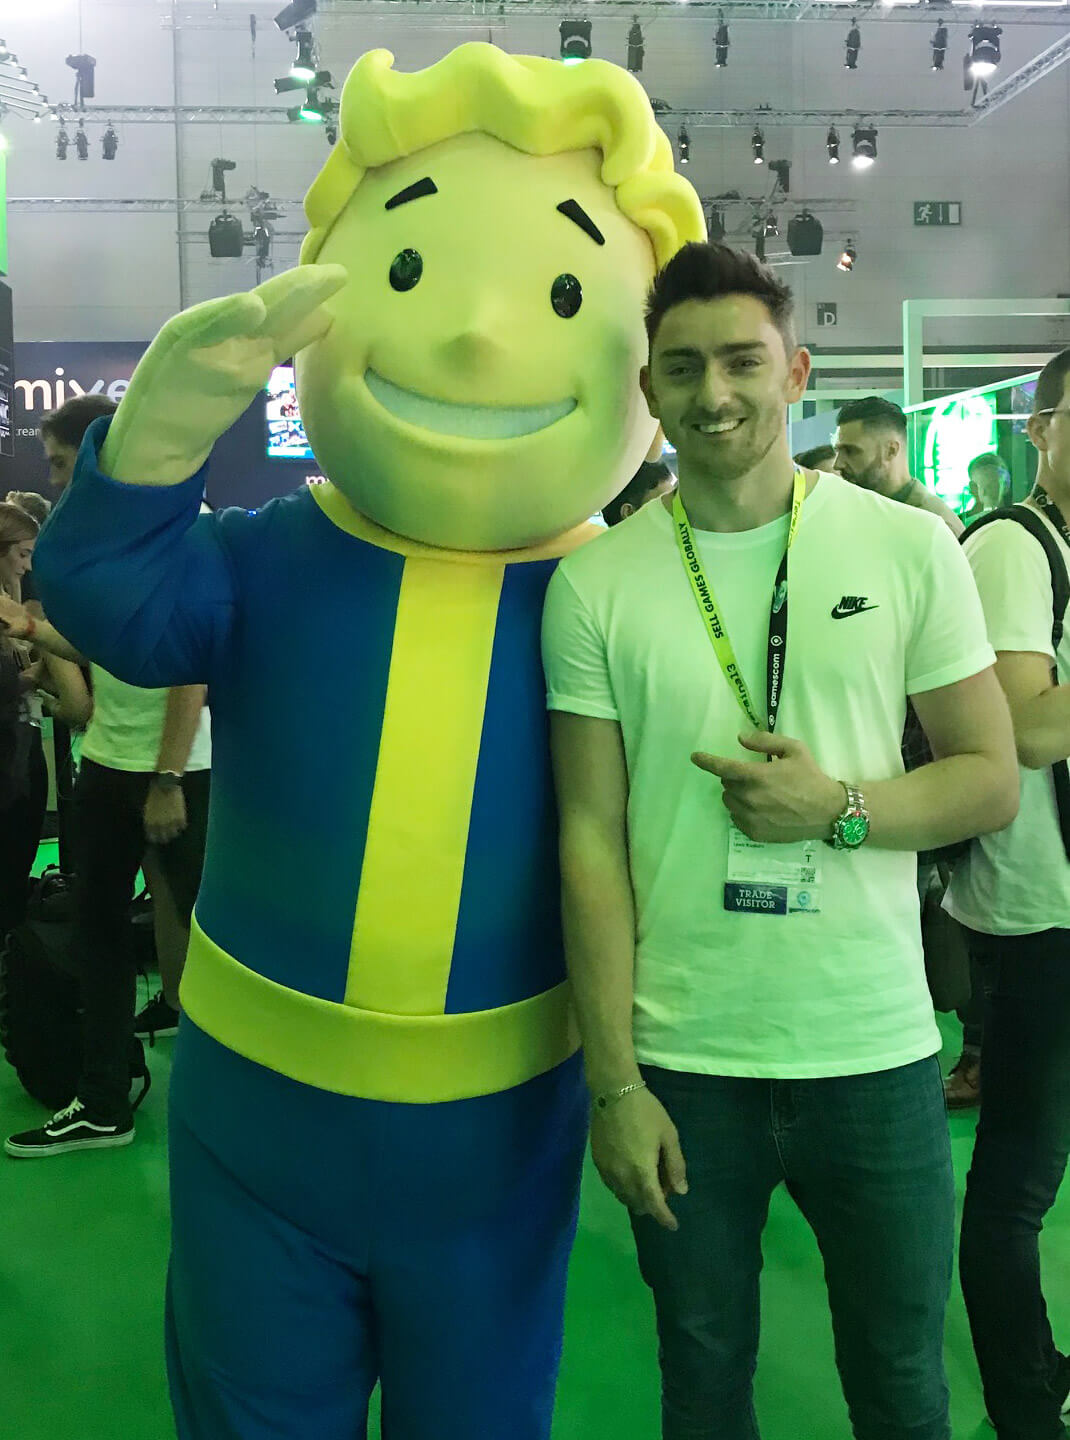 Gamescom: Vault Boy